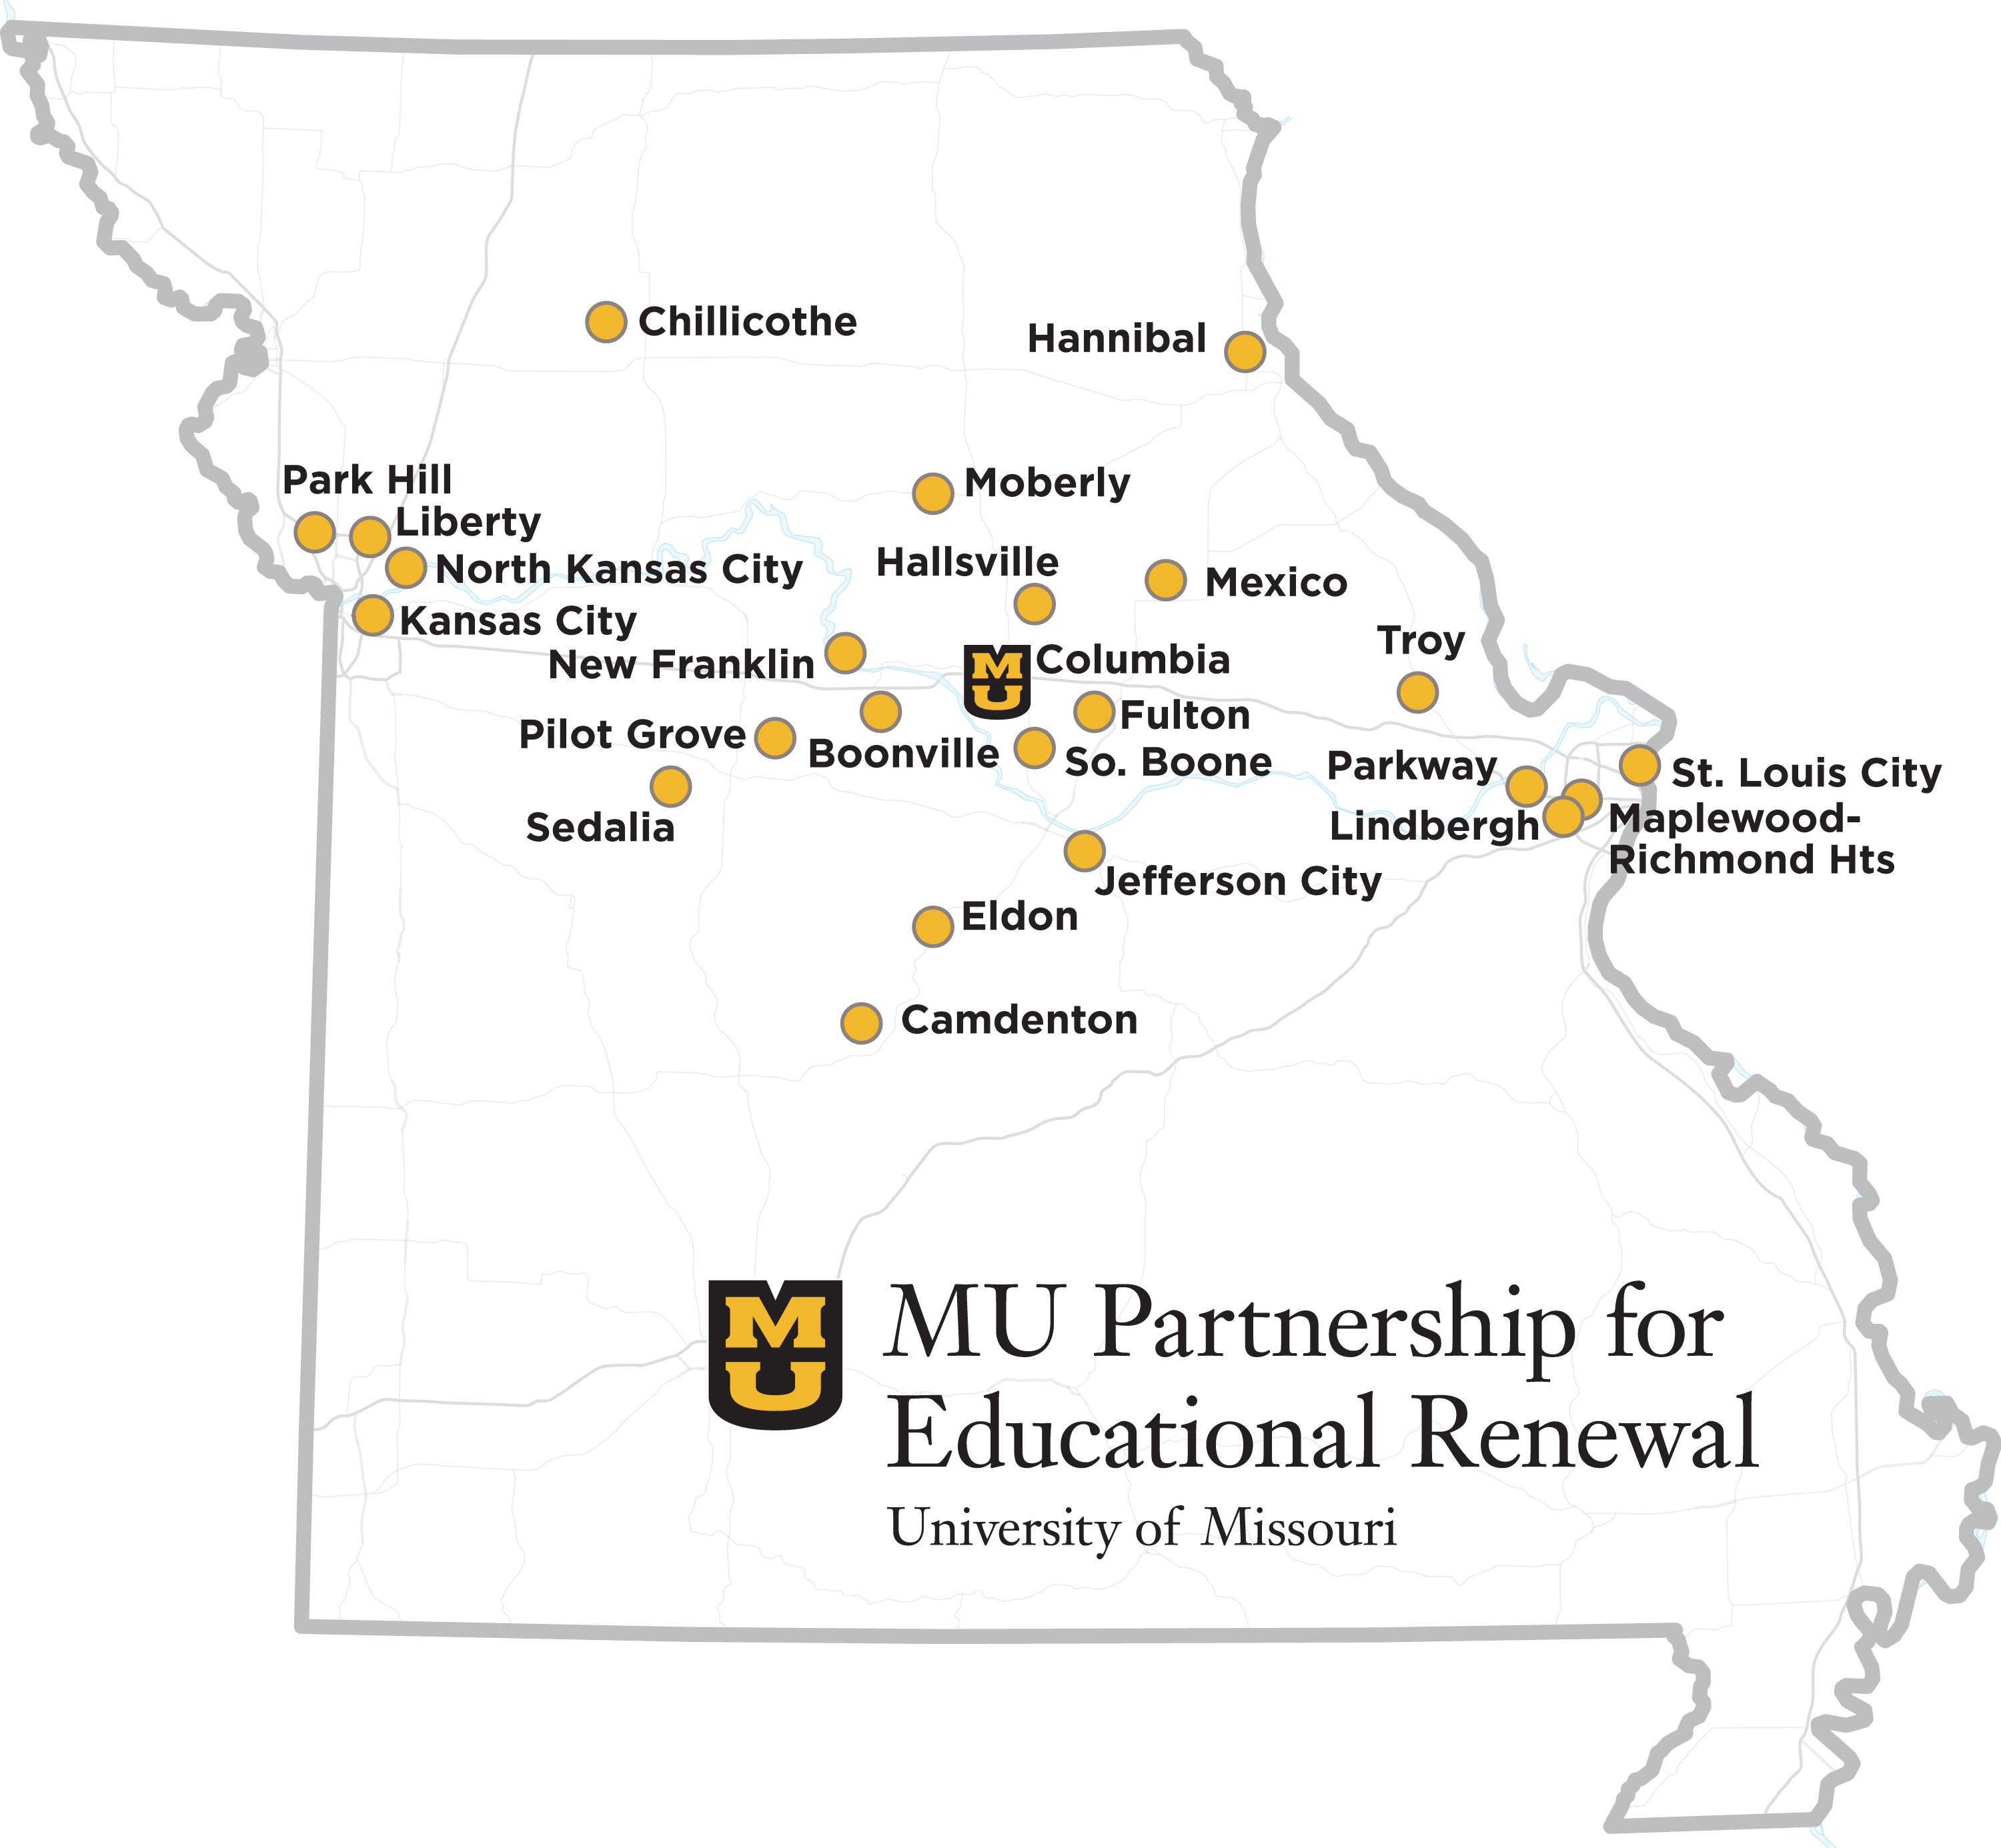 MU Partnership for Educational Renewal, MPER, Partner School Districts Map of Missouri with locator dots and MPER logo, University of Missouri College of Education